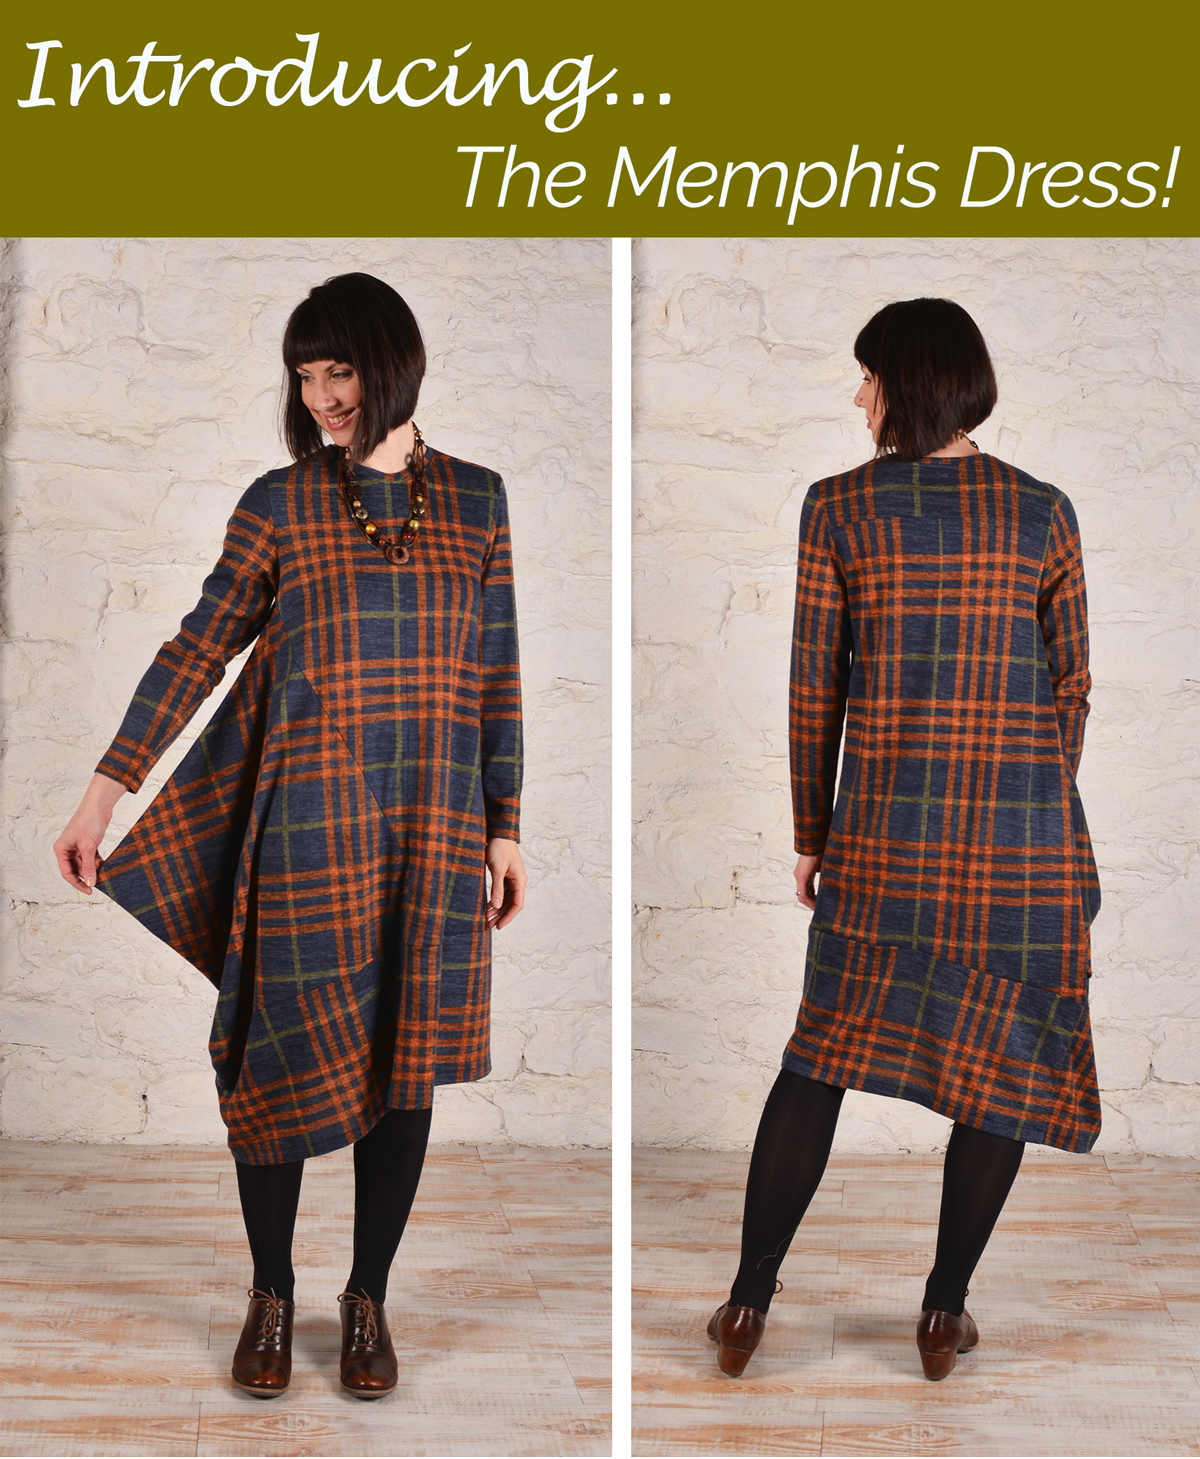 Introducing The Memphis Dress!